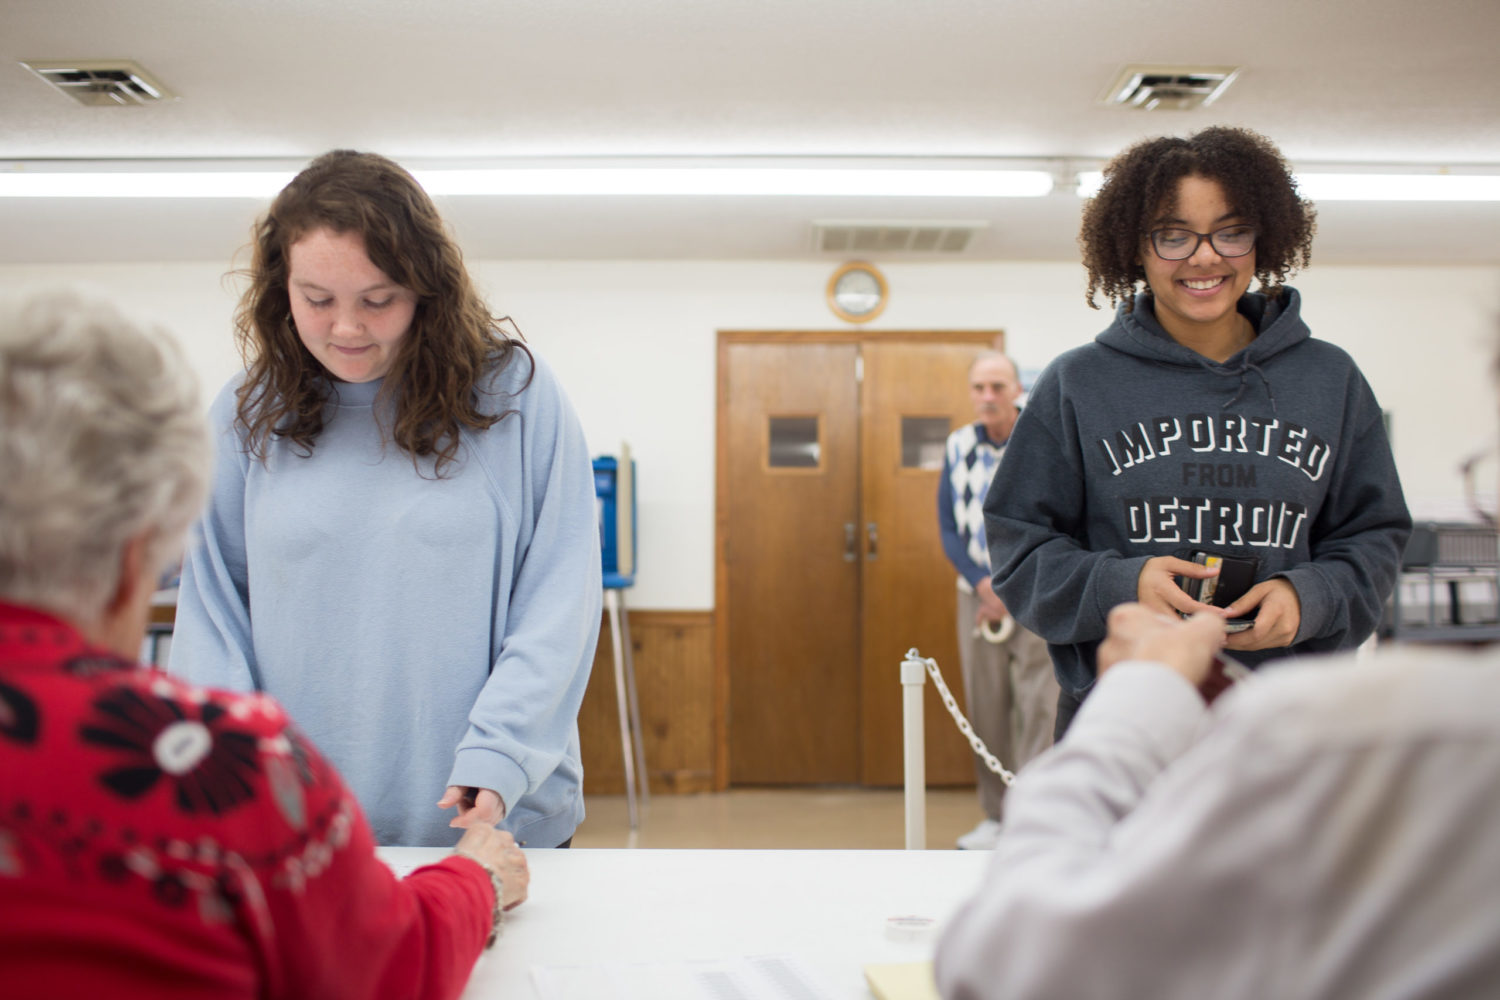 Lanie Hamrick, left, and Destinee Terry, both students at Asheville-Buncombe Technical Community College, check in to pick up their primary election ballots at the Old Fort Wesleyan Church polling place in McDowell County on March 3, 2020. Colby Rabon / Carolina Public Press